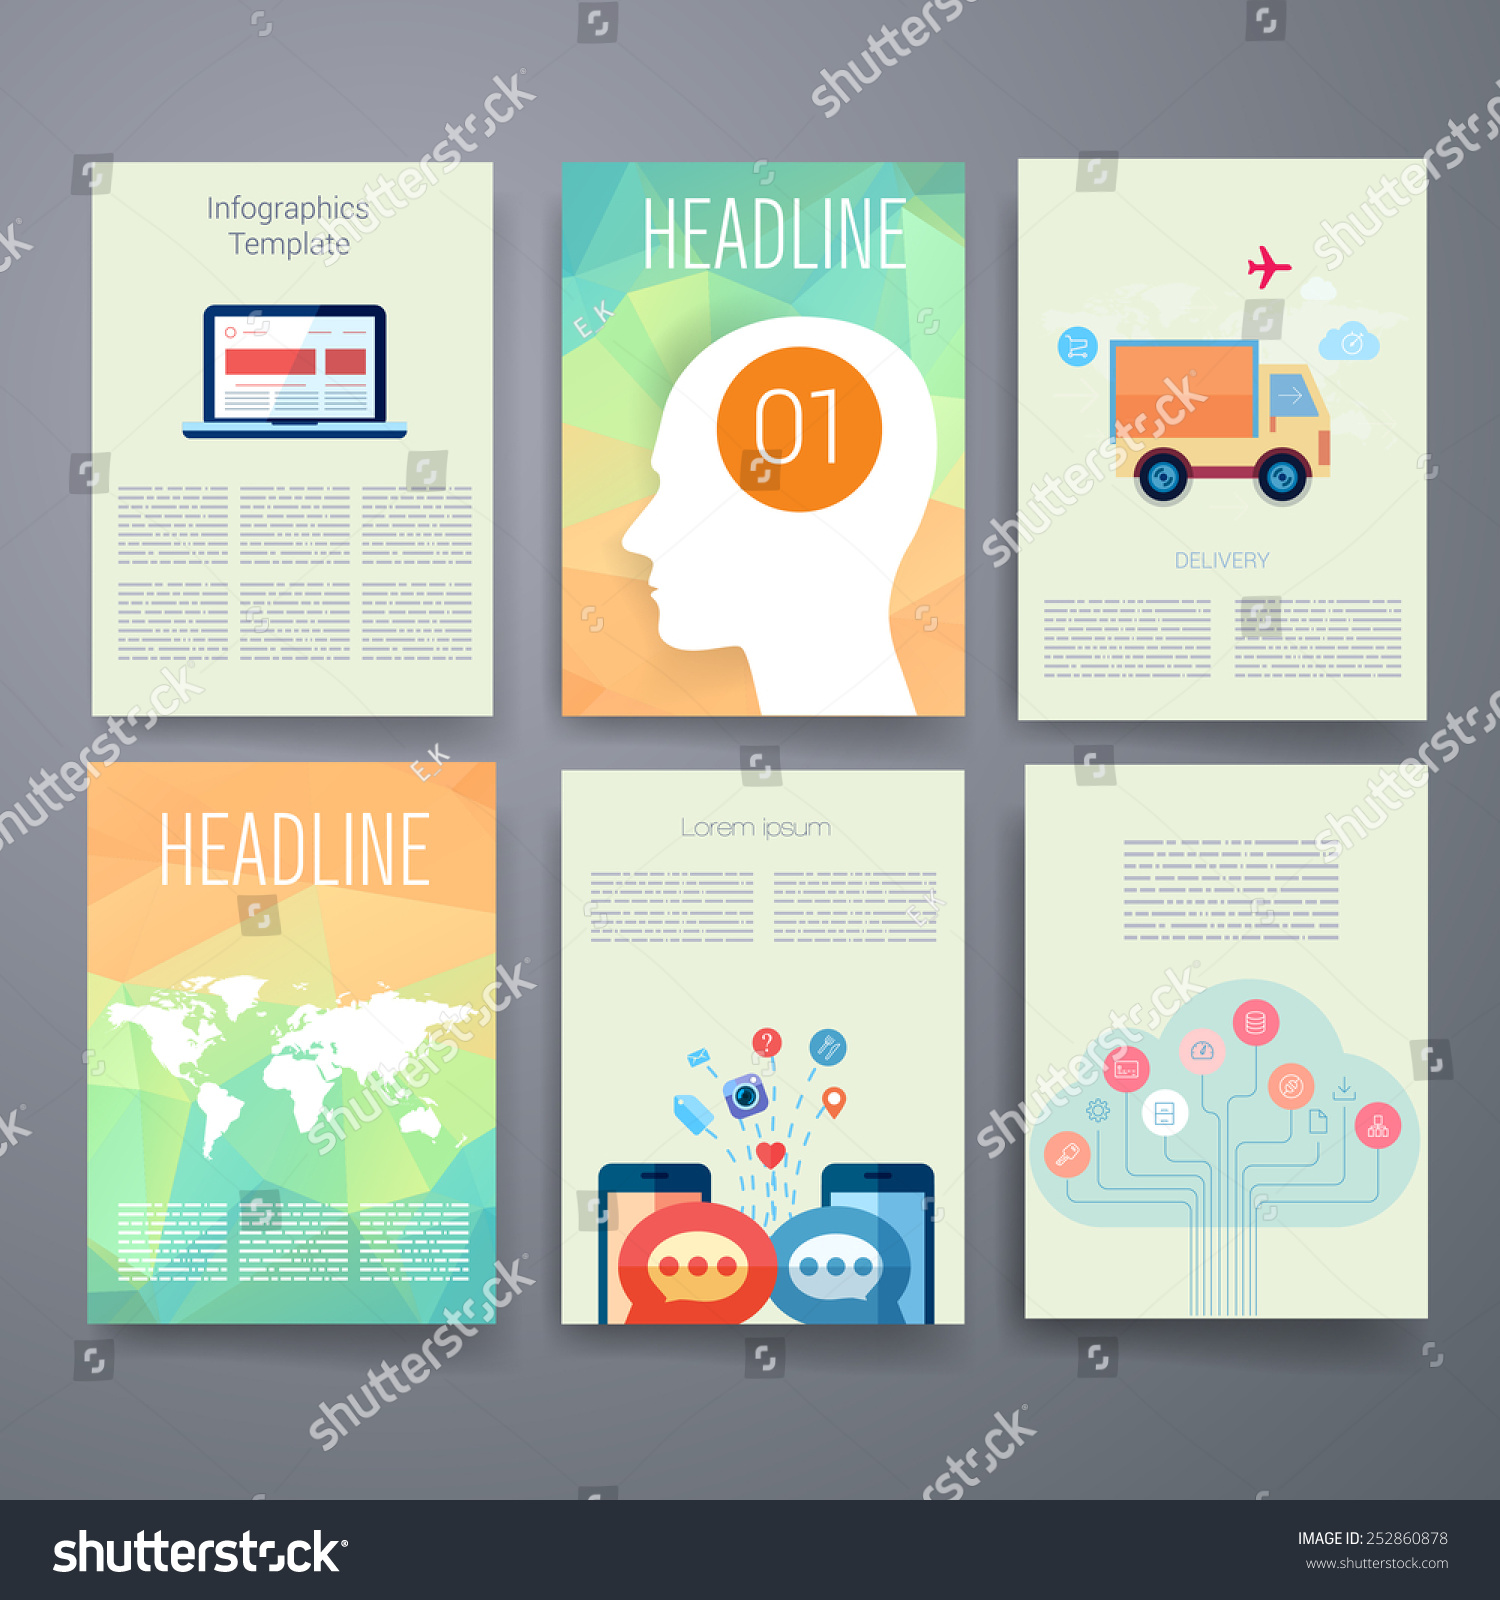 Templates Design Set Web Mail Brochures Stock Vector